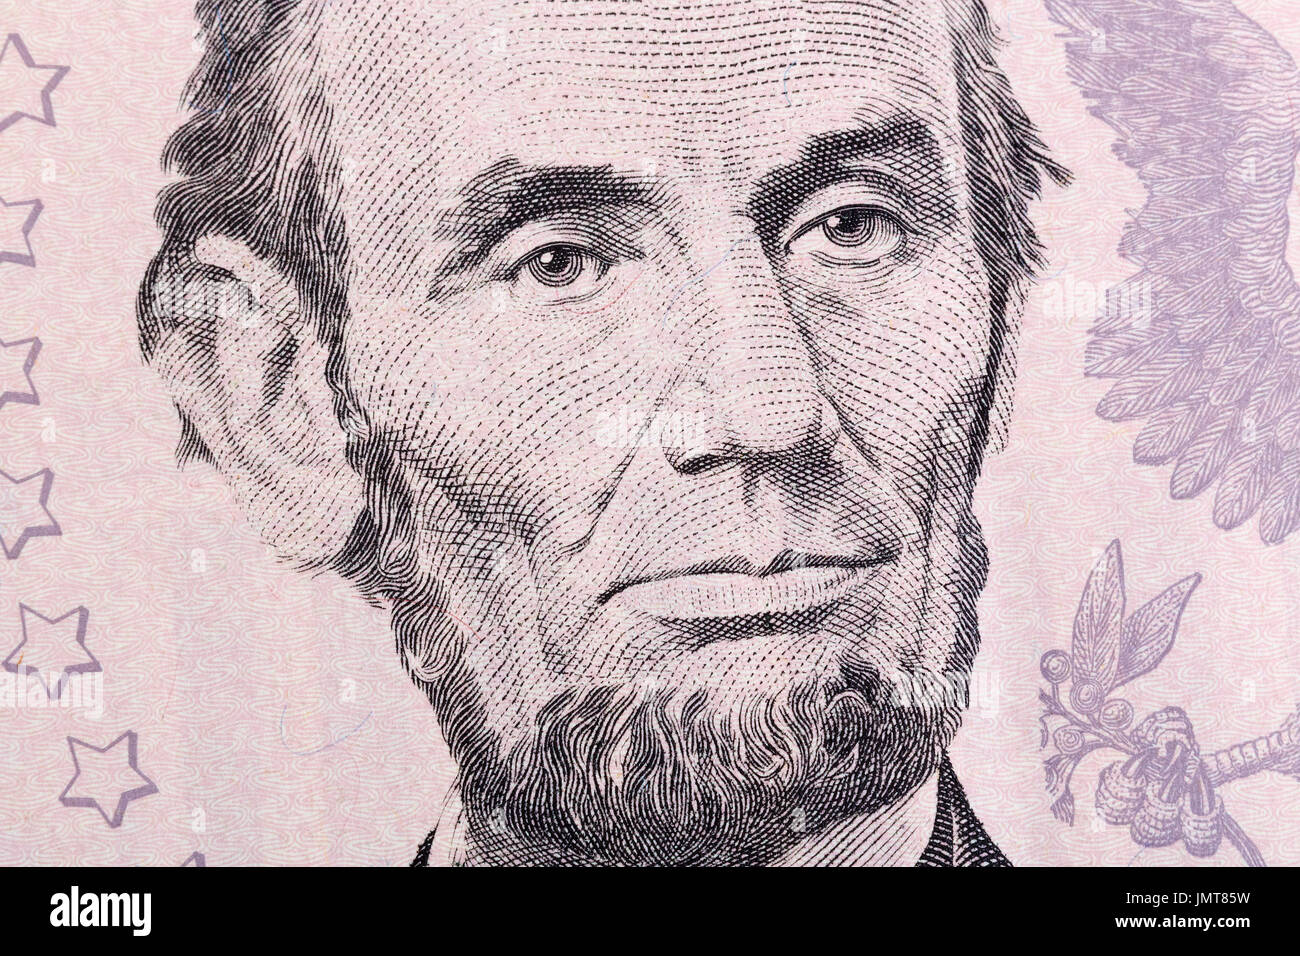 Macro portrait d'Abraham Lincoln sur cinq dollar américain bill. Photo Stock